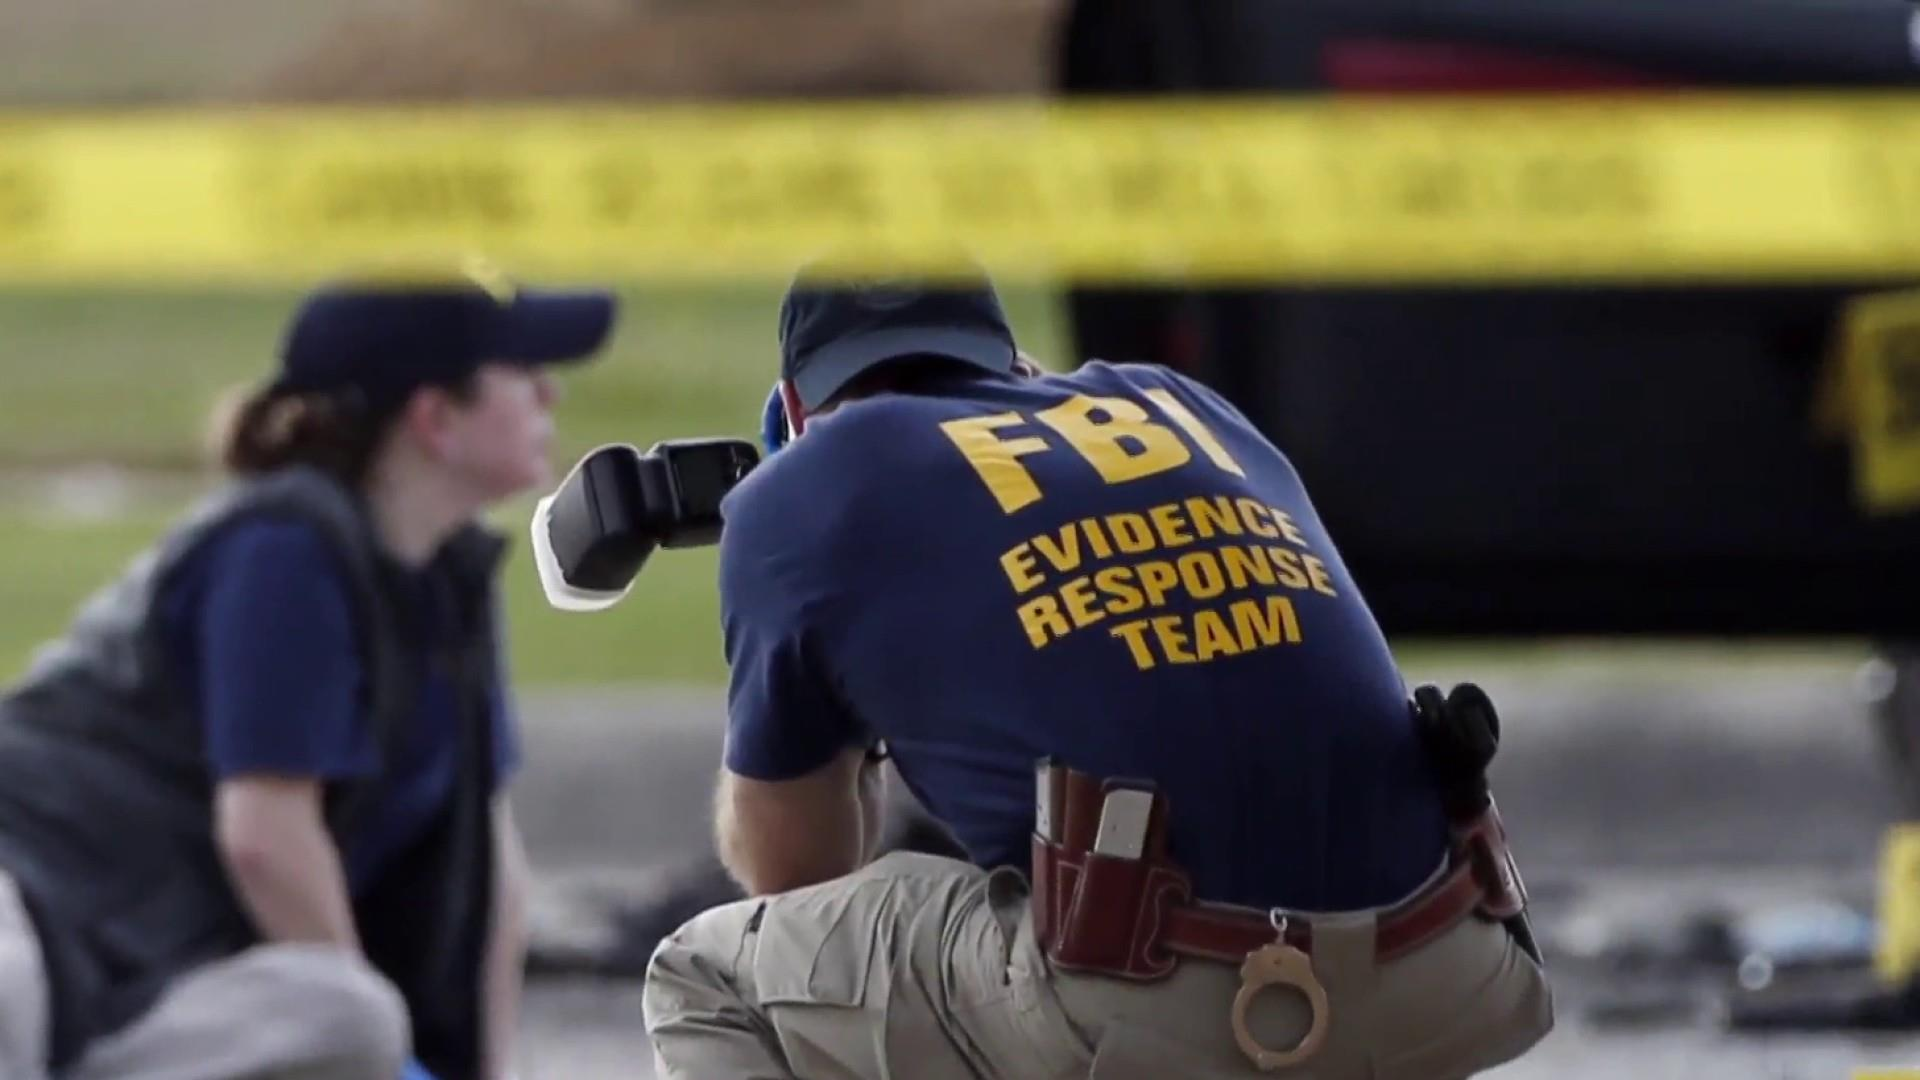 FBI aims to expand its applicant pool amid recruiting shortage